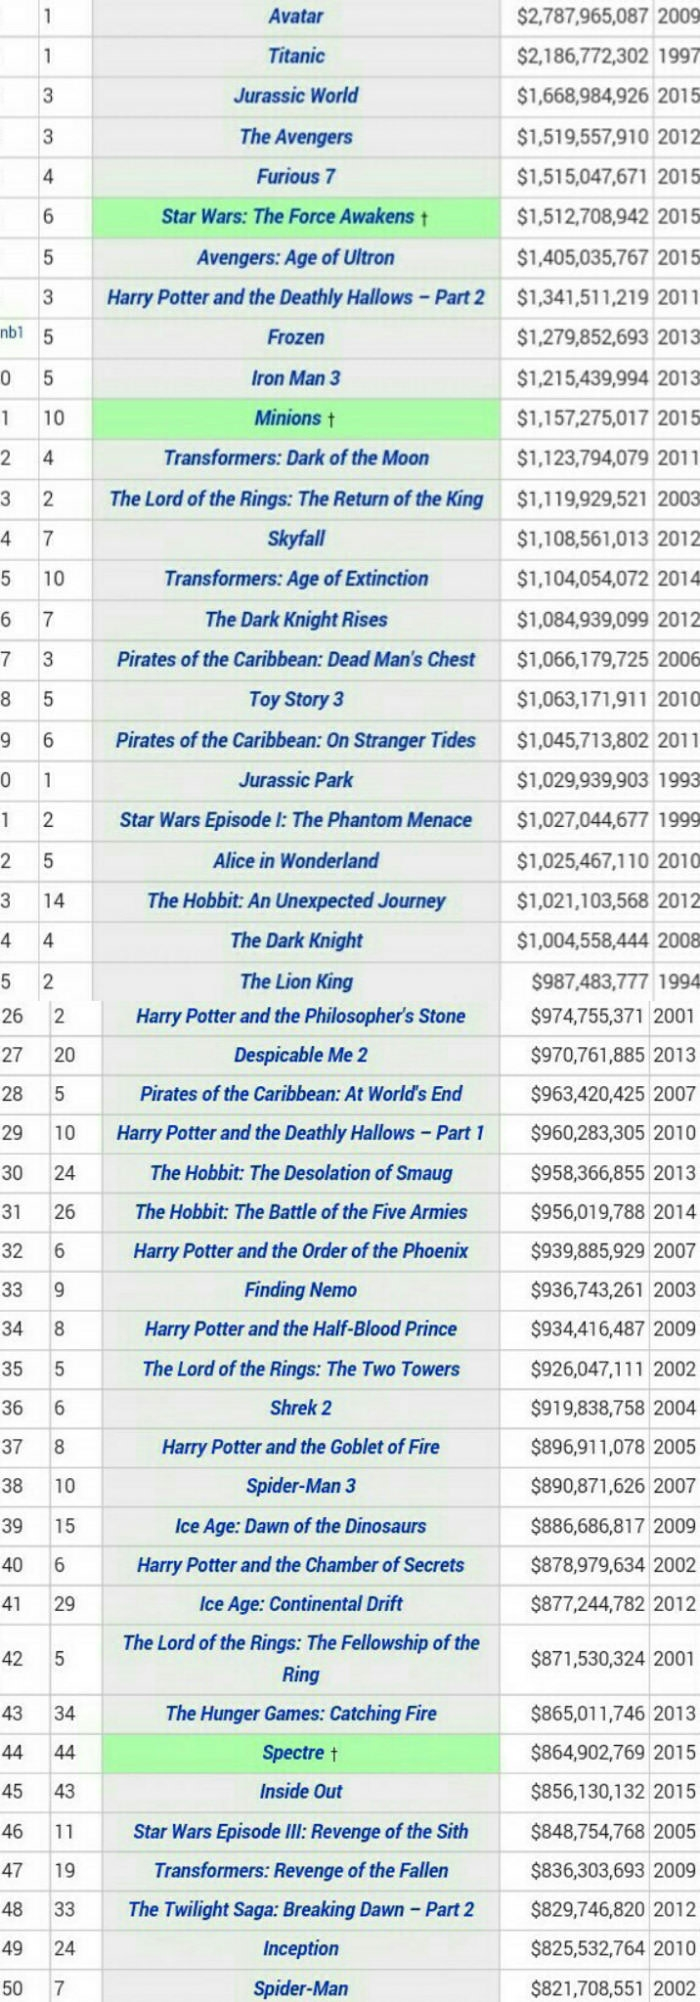 Top 50 highest grossing movies of all time